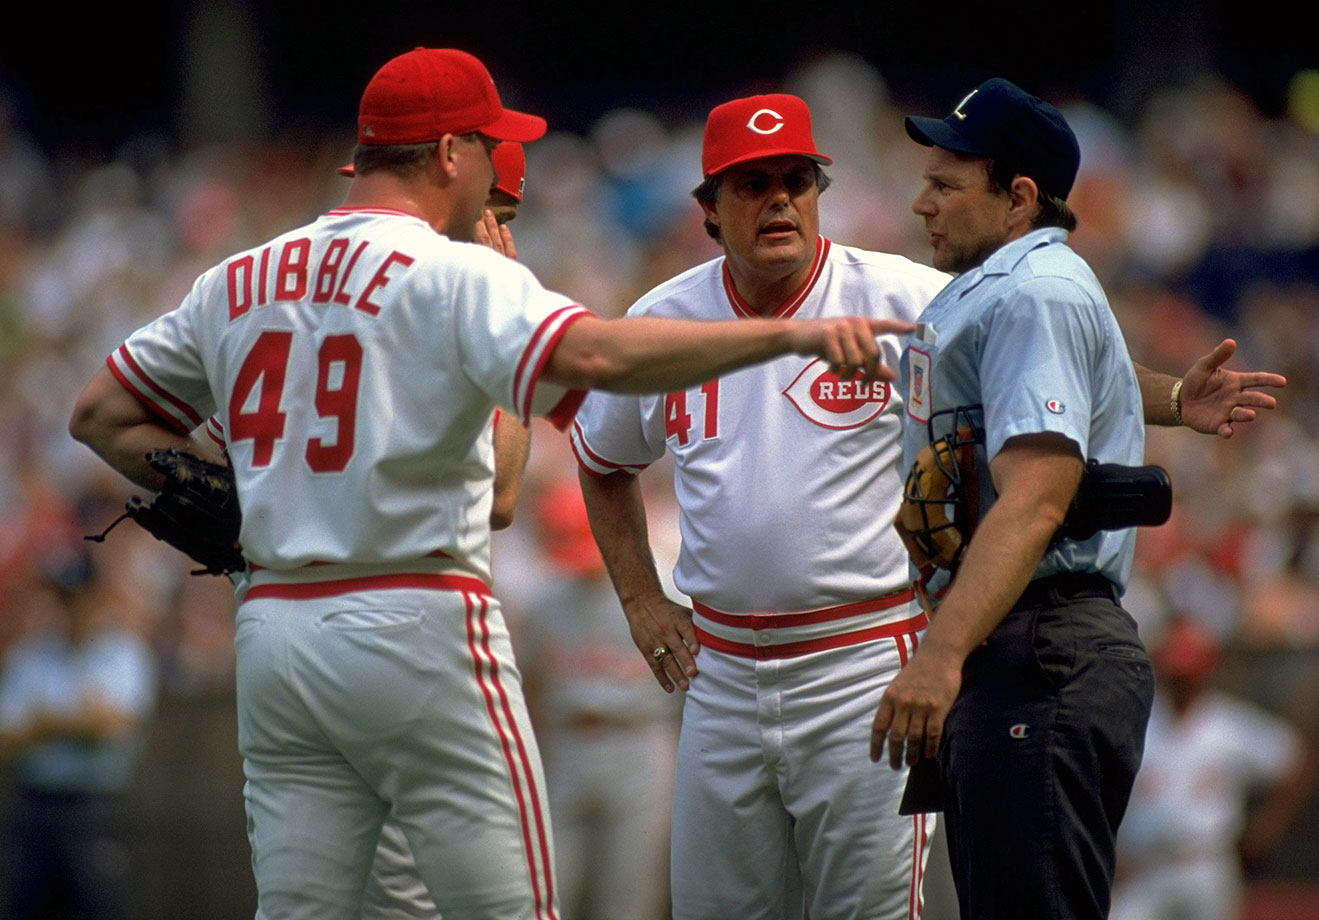 Piniella, the Reds manager, was known for his hot temper, and so was Dibble, a hard-throwing member of Cincinnati's Nasty Boys relief corps. So perhaps it was inevitable that the two would clash, with the dustup finally occurring late in the 1992 season when Dibble claimed Piniella had falsely indicated to reporters that he had a bad shoulder. Piniella called Dibble a liar and the two wrestled in the clubhouse.